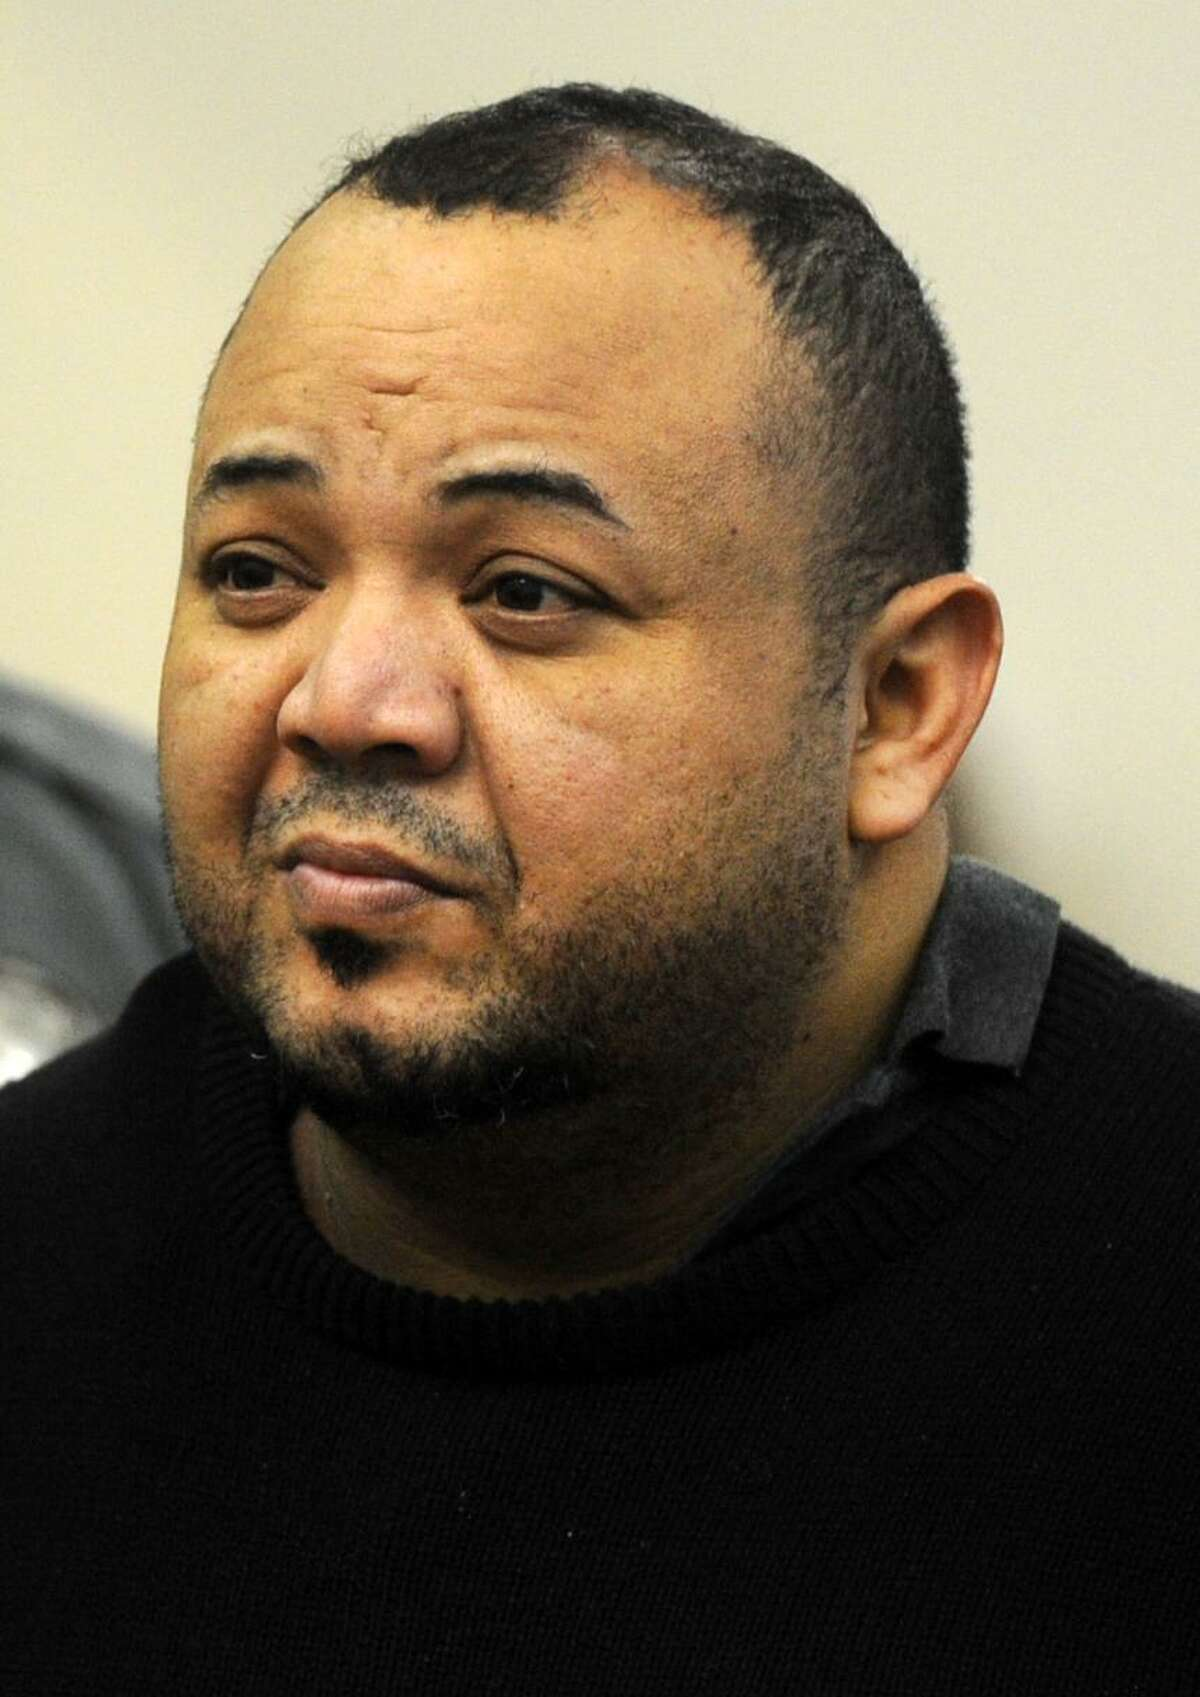 Oscar Hernandez faces Judge William Holden in Bridgeport Superior Court on Monday, April 10, 2017 in Bridgeport, Conn. Hernandez, 39, was arraigned on murder and kidnapping charges, his bond set at $2 million.